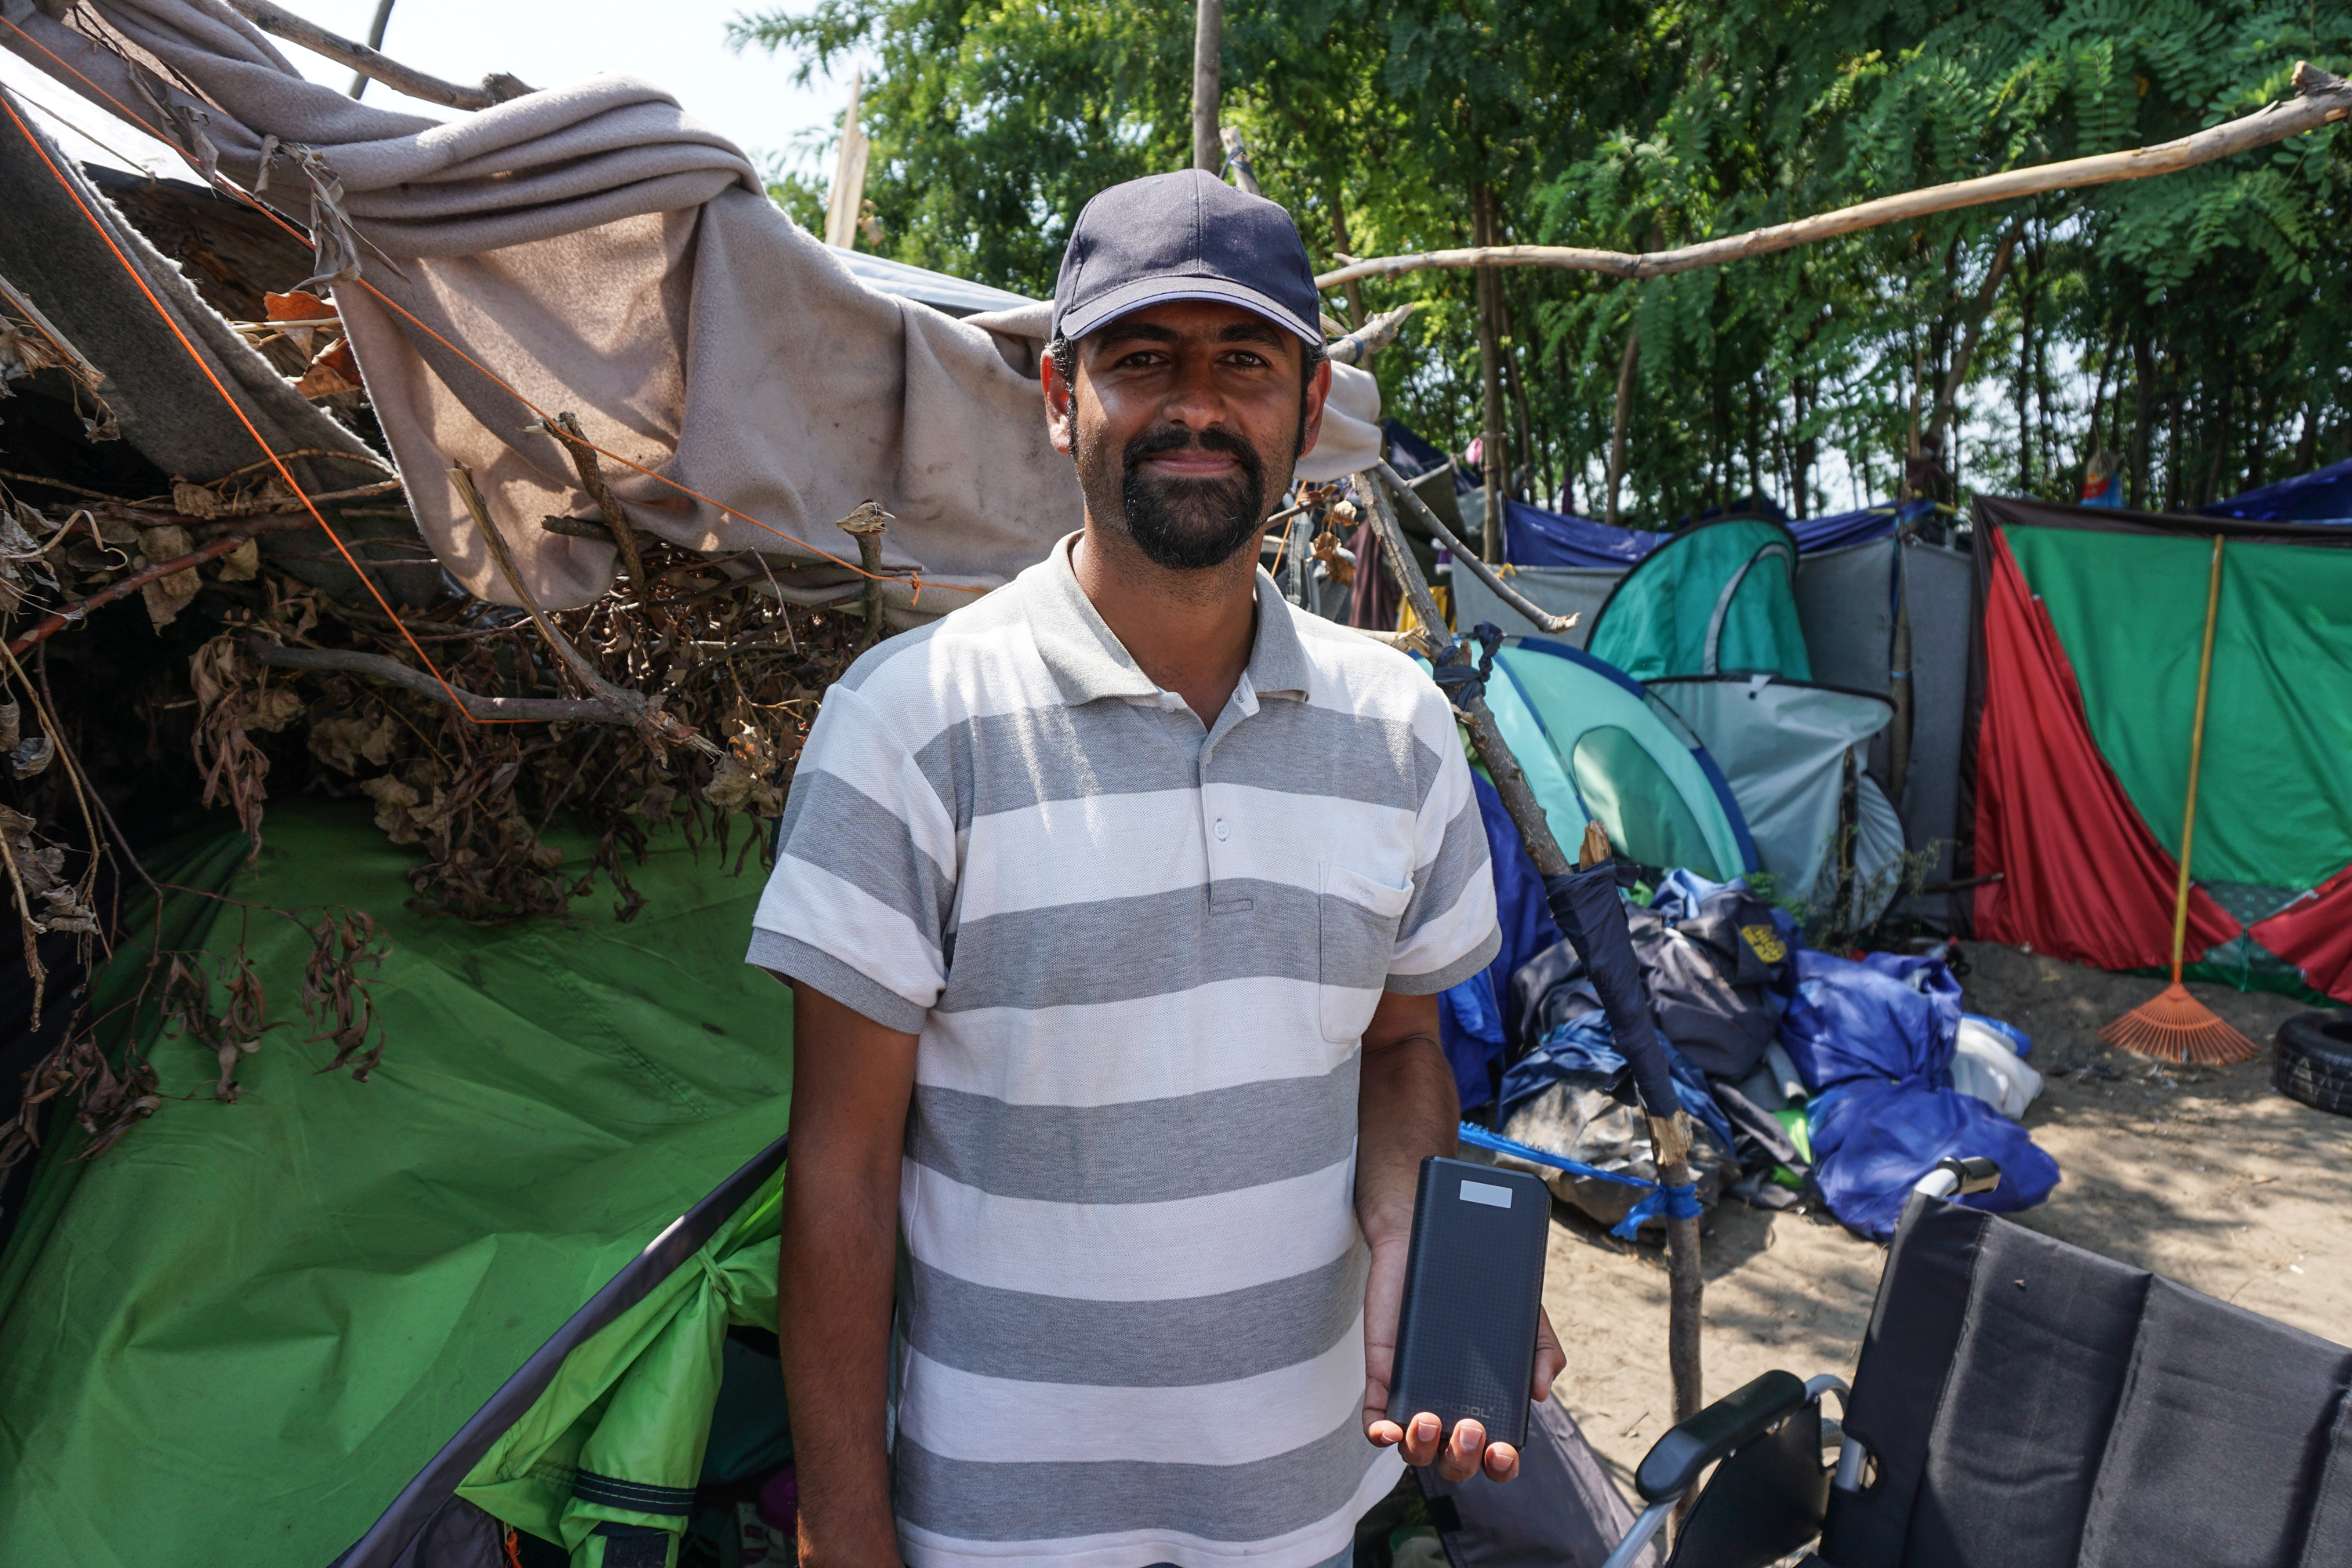 road-trip-refugees-germany-hungary-277-sayed-mohsen-shah-lead-anecdote-for-story.jpg